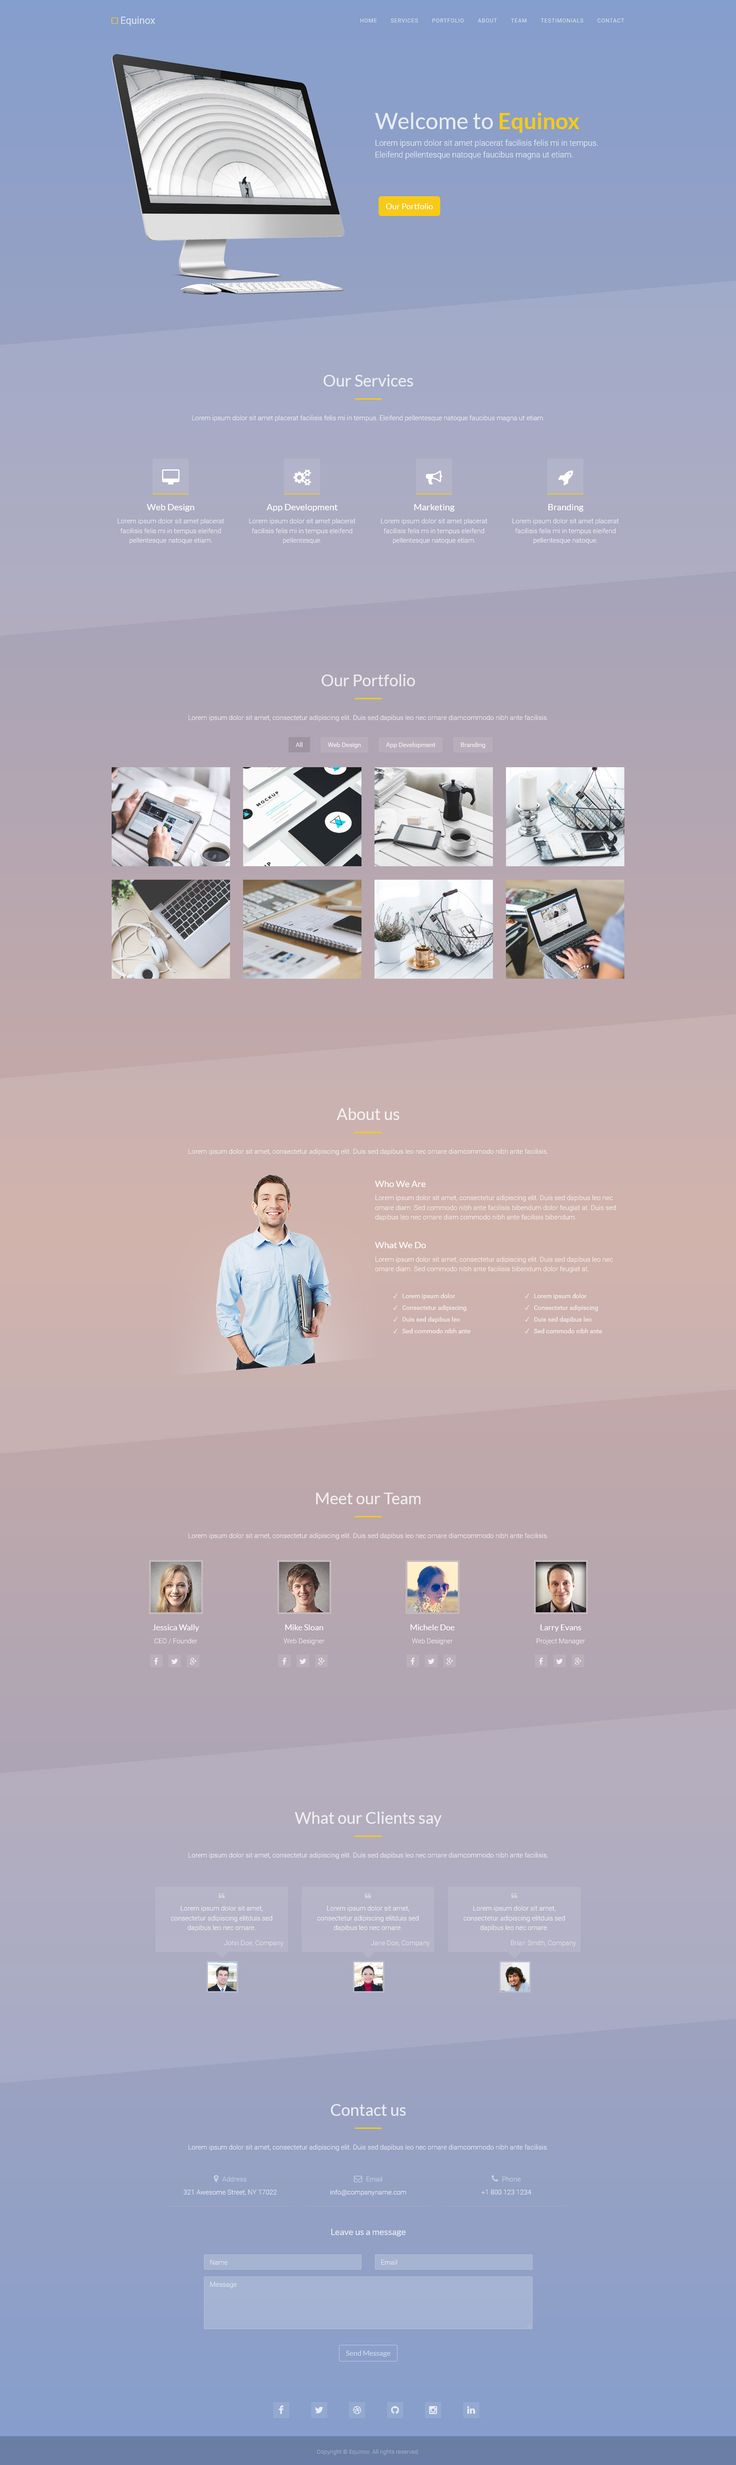 Equinox - One Page Creative Template